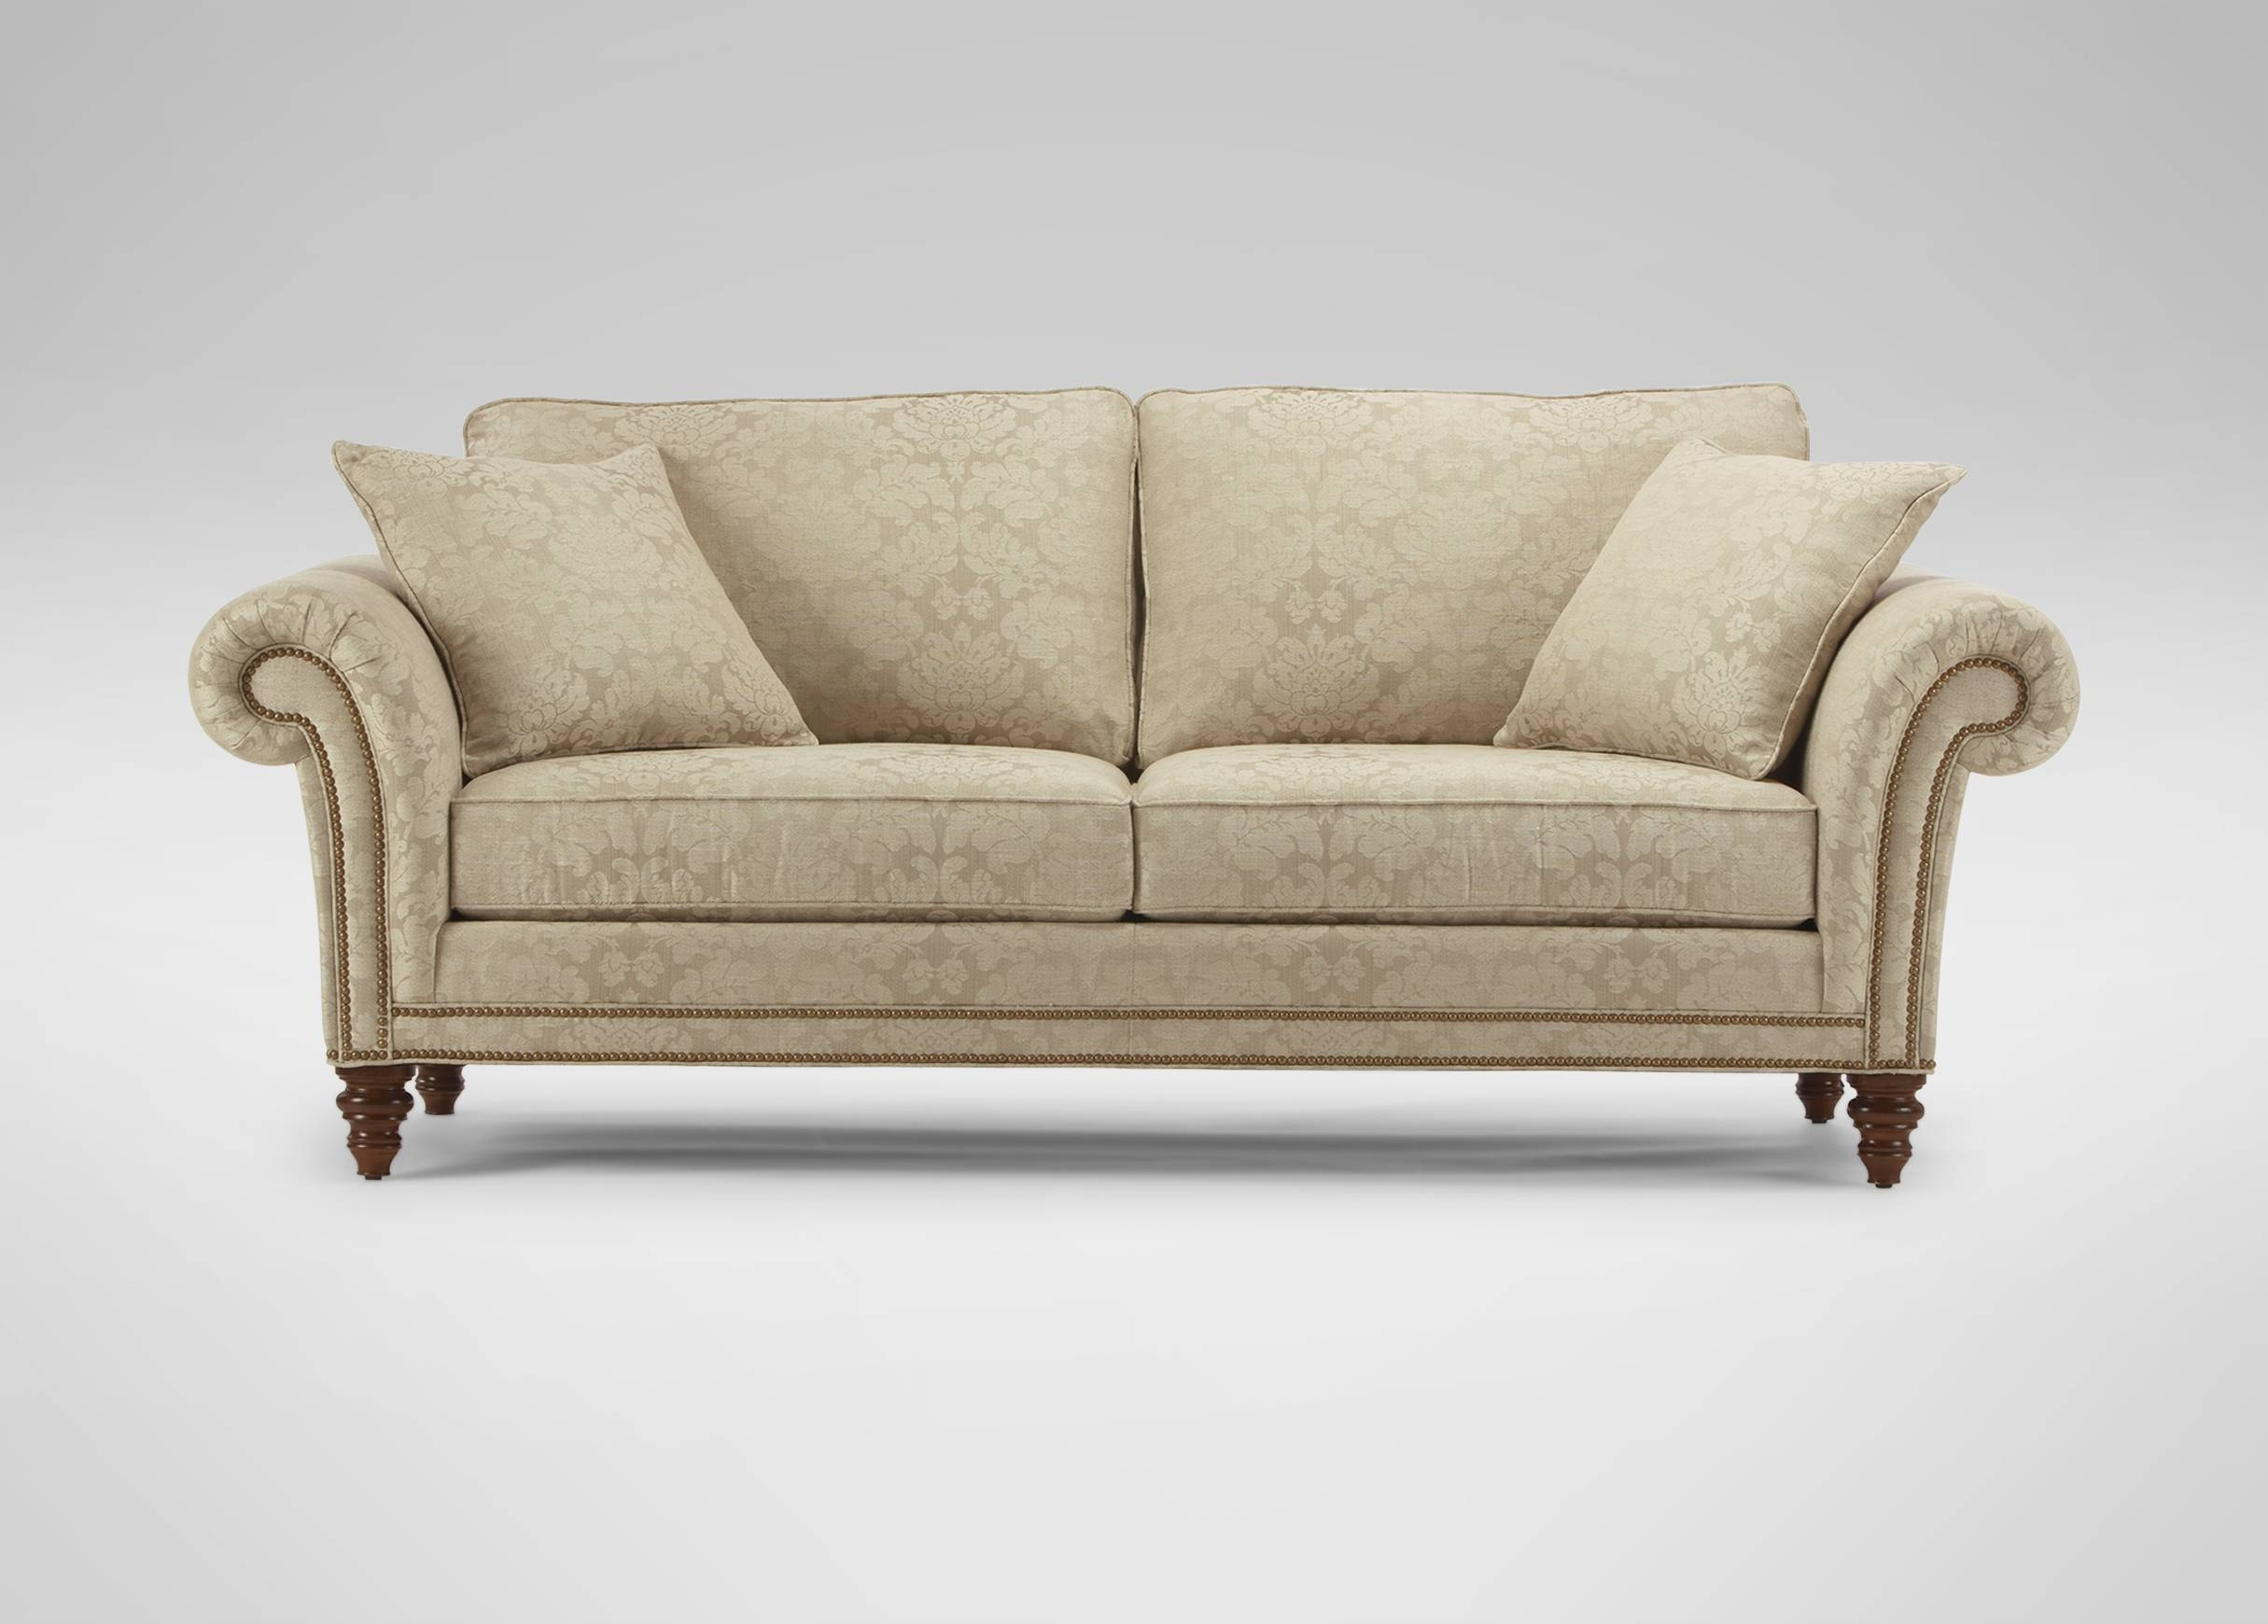 Popular Photo of Savoy Sofas